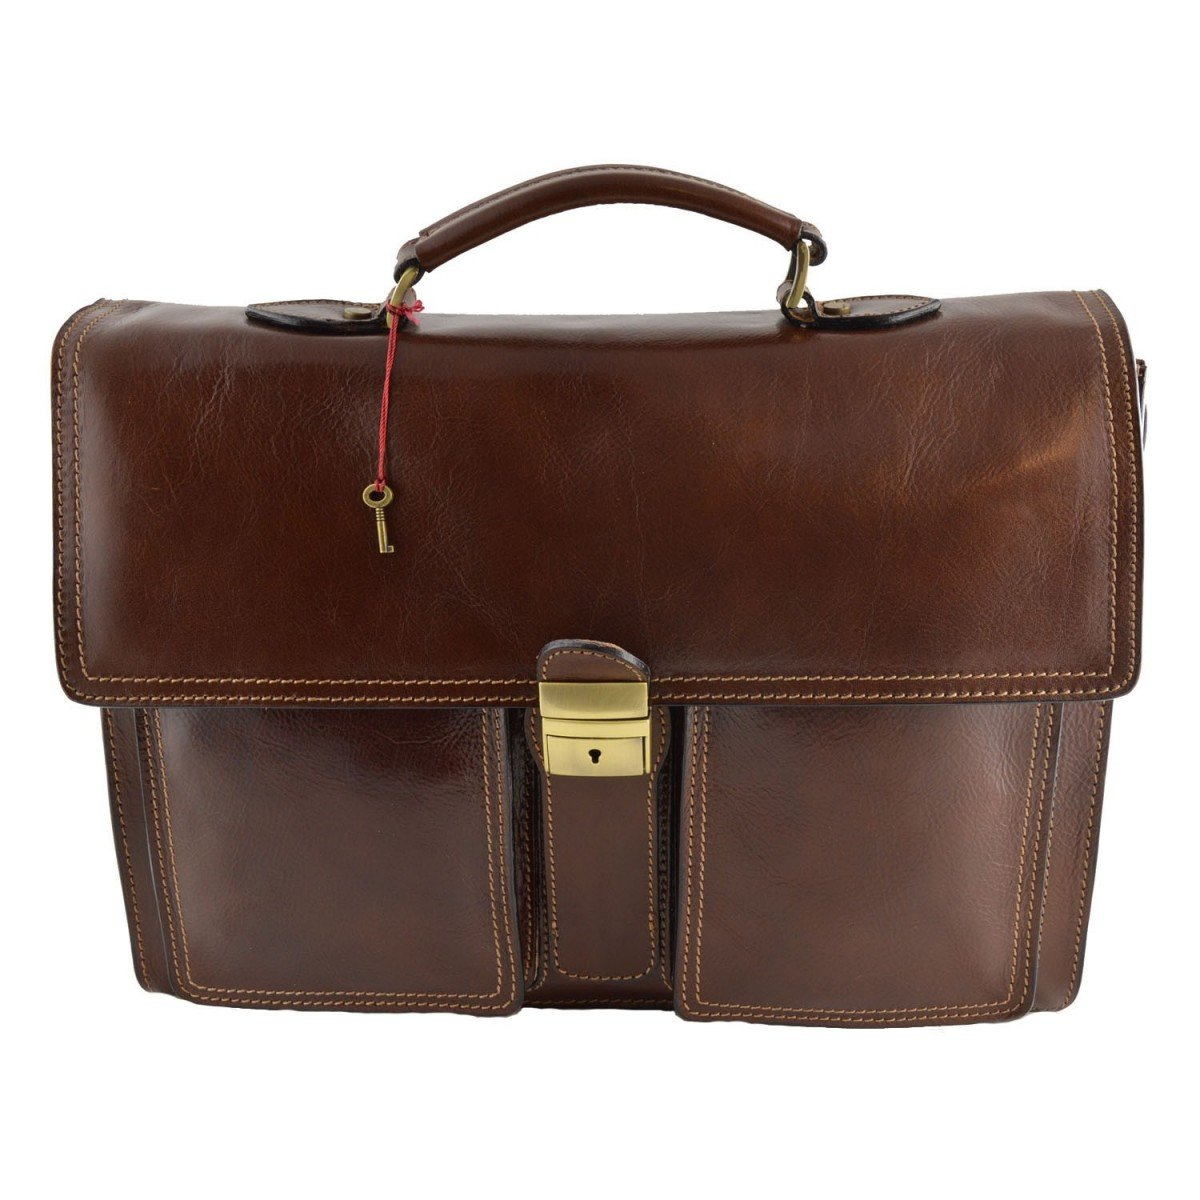 Made In Italy Business Briefcase In Genuine Leather 3 Compartments Color Brown - Business Bag   B01CON7EZE